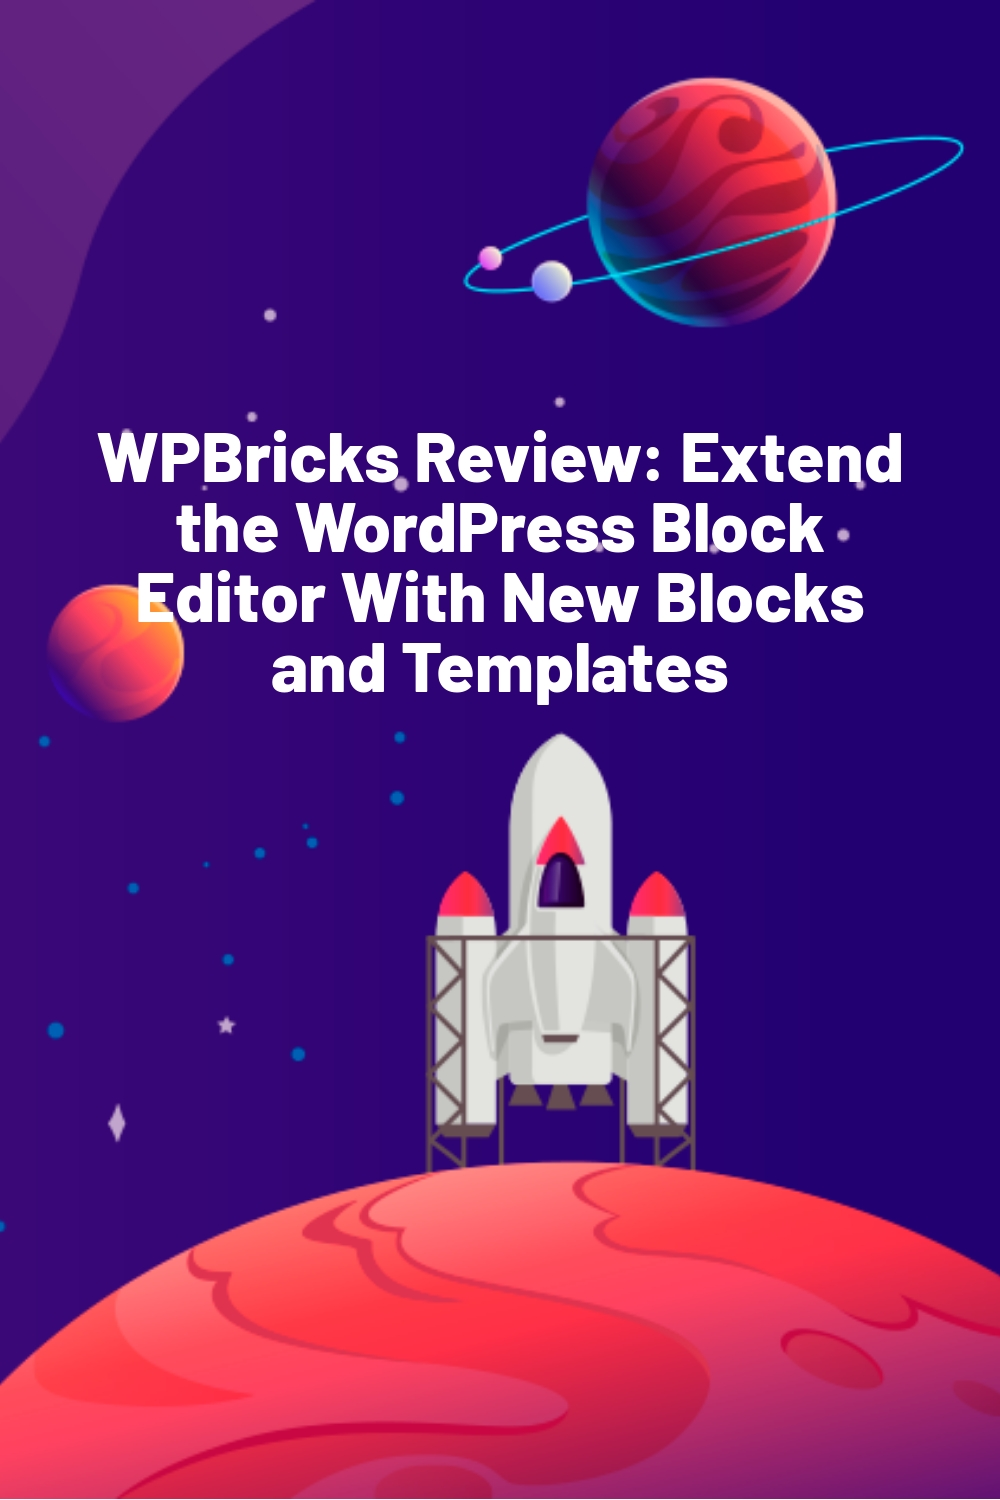 WPBricks Review: Extend the WordPress Block Editor With New Blocks and Templates